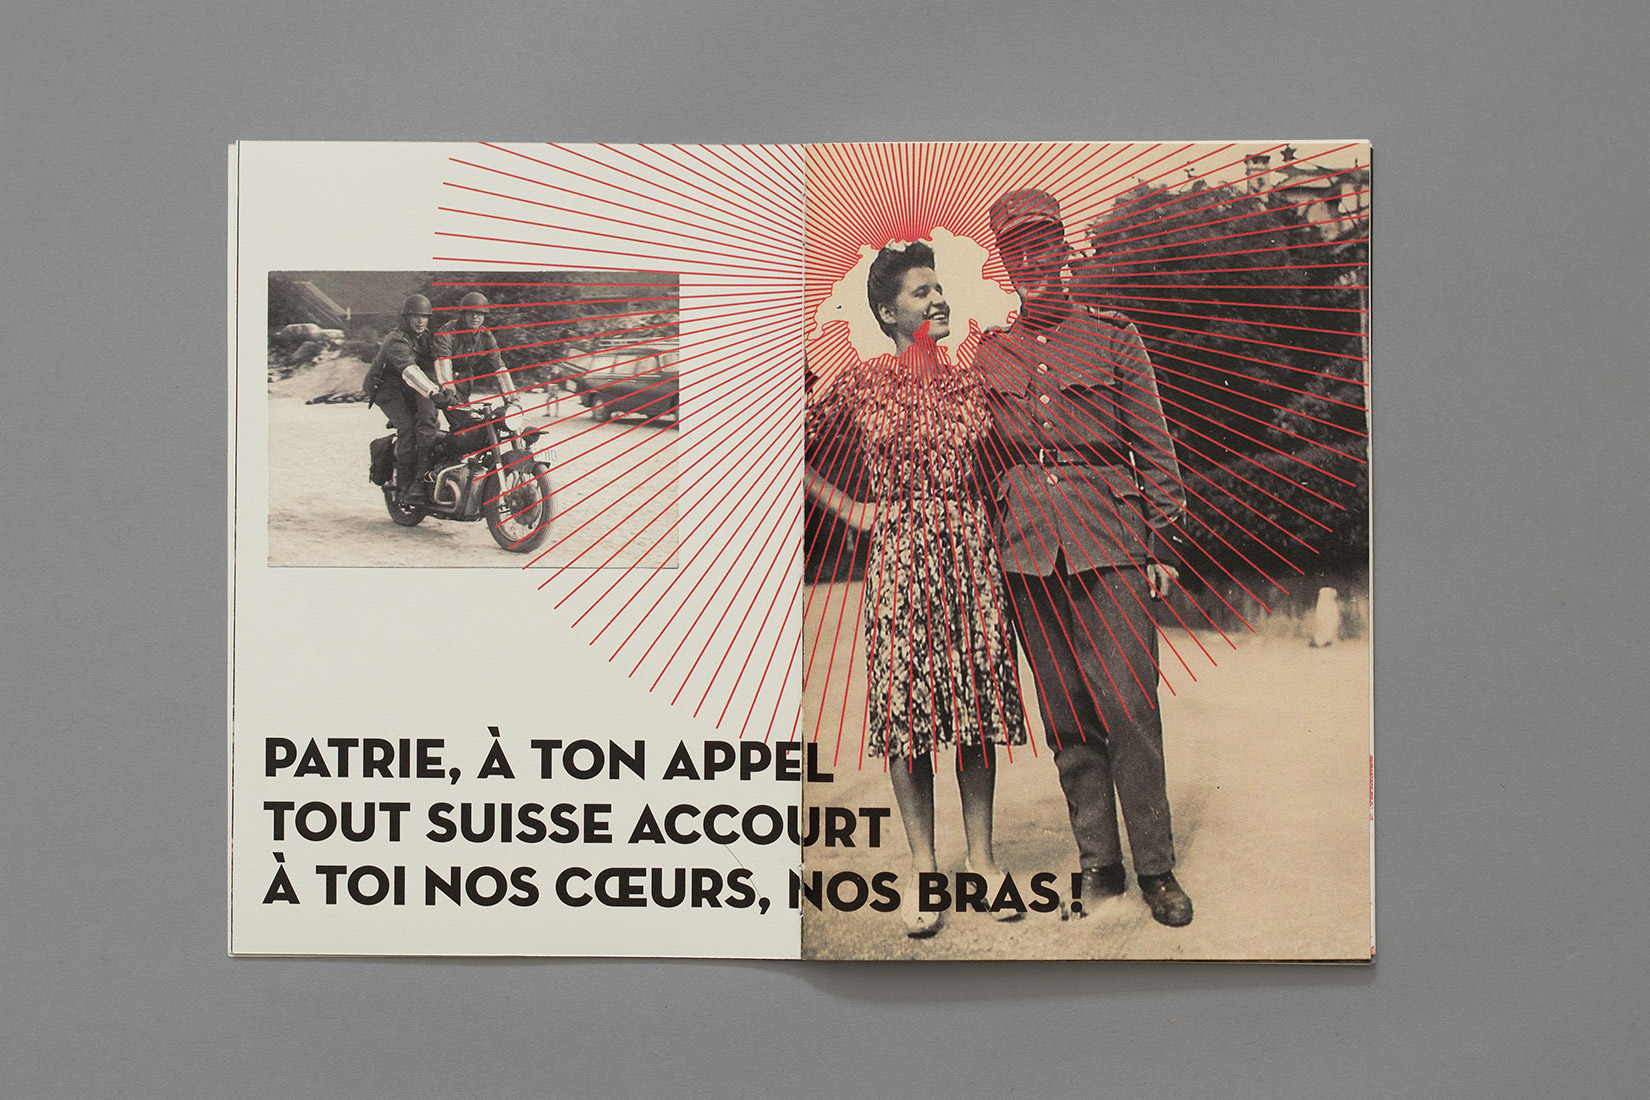 Manual for the perfect little soldier, military postcard, motorcycle, couple, switzerland, graphic design, Neutraface, Patrie à ton appel, tout suisse accourt, à toi nos coeurs, nos bras!